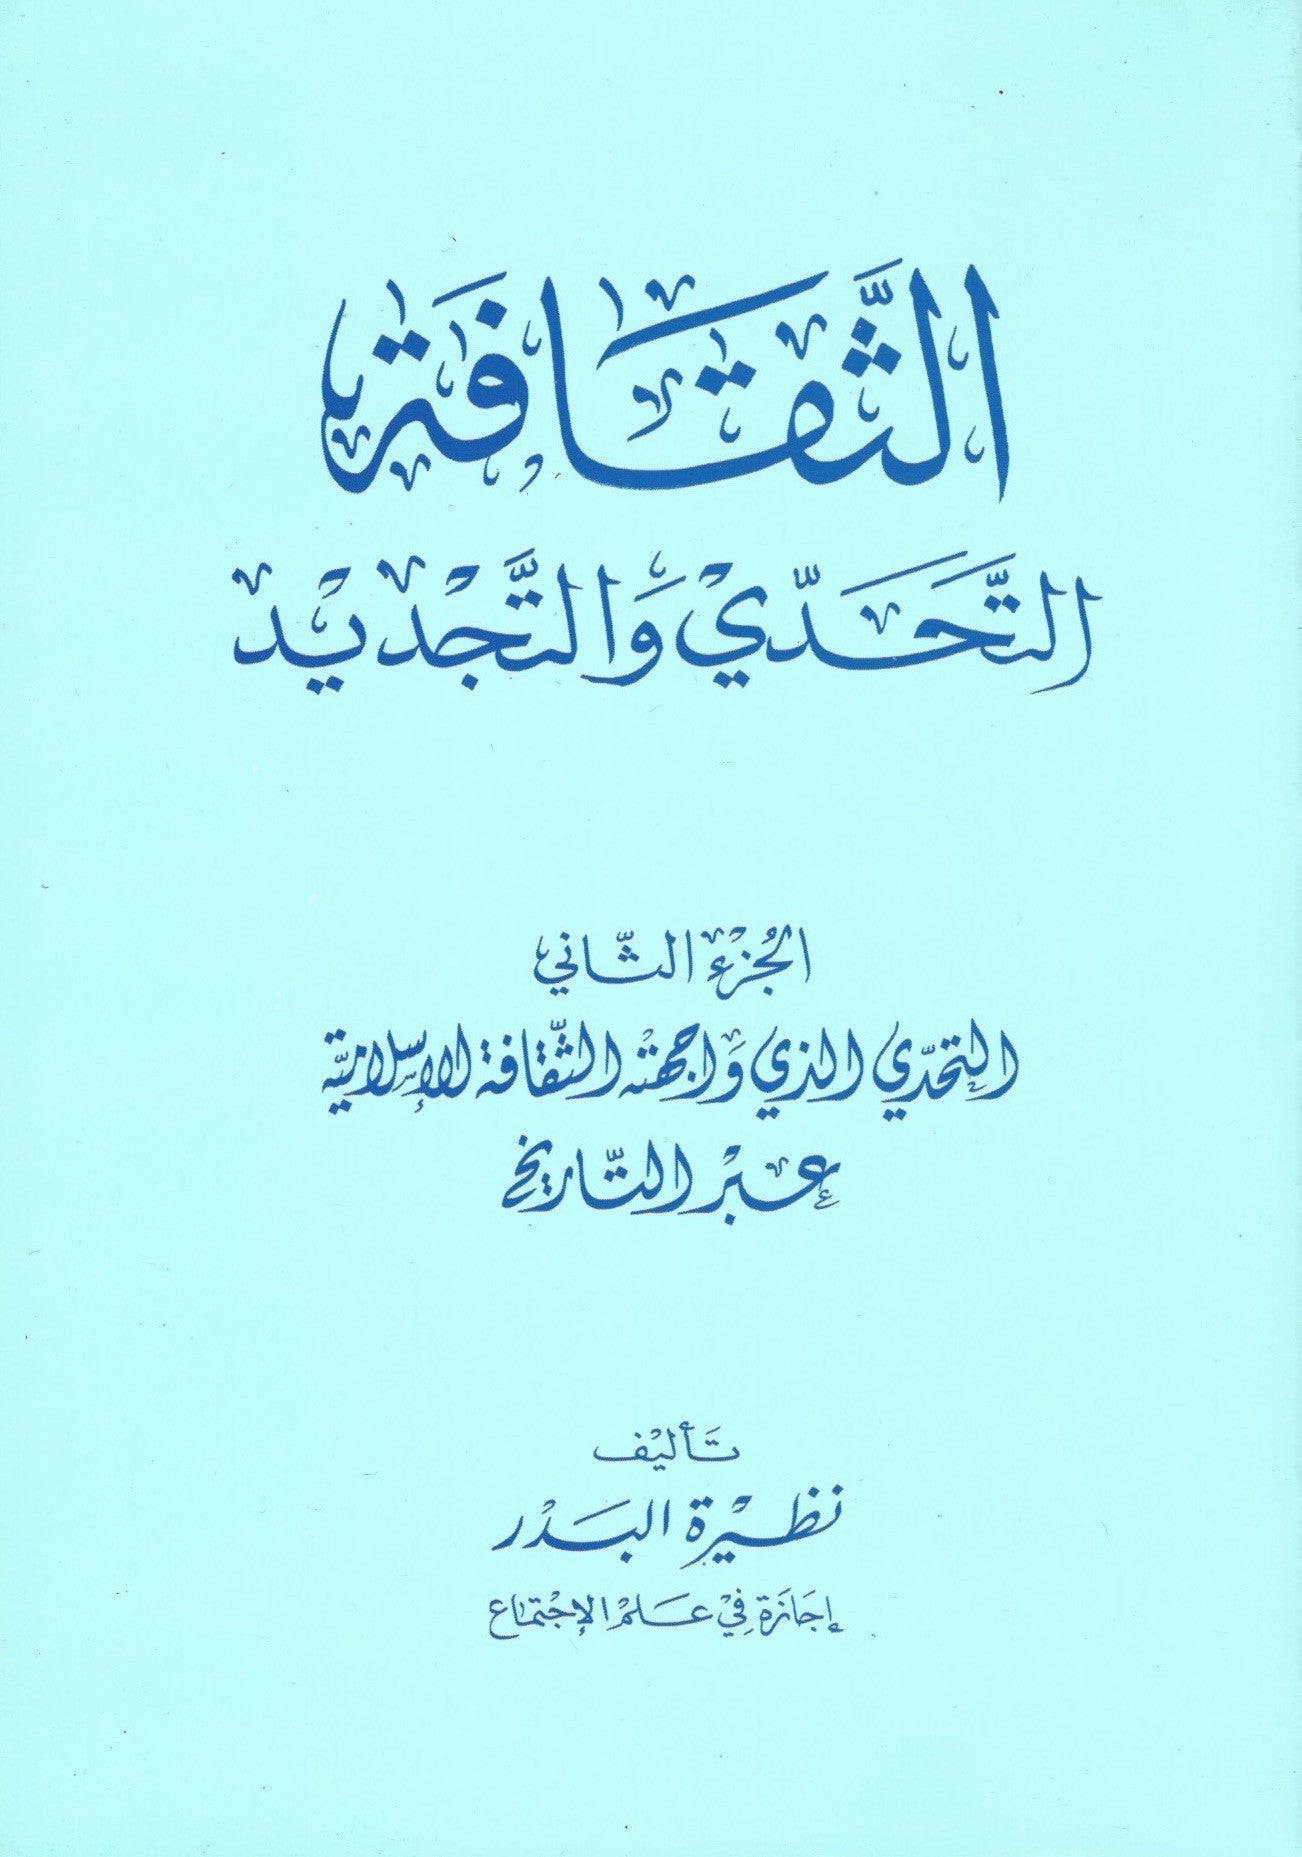 الثقافة: التحدّي والتجديد (Al Thaqafi - 4 volumes) , Shaam - Daybreak Press Global Bookshop, Daybreak Press Global Bookshop  - 2